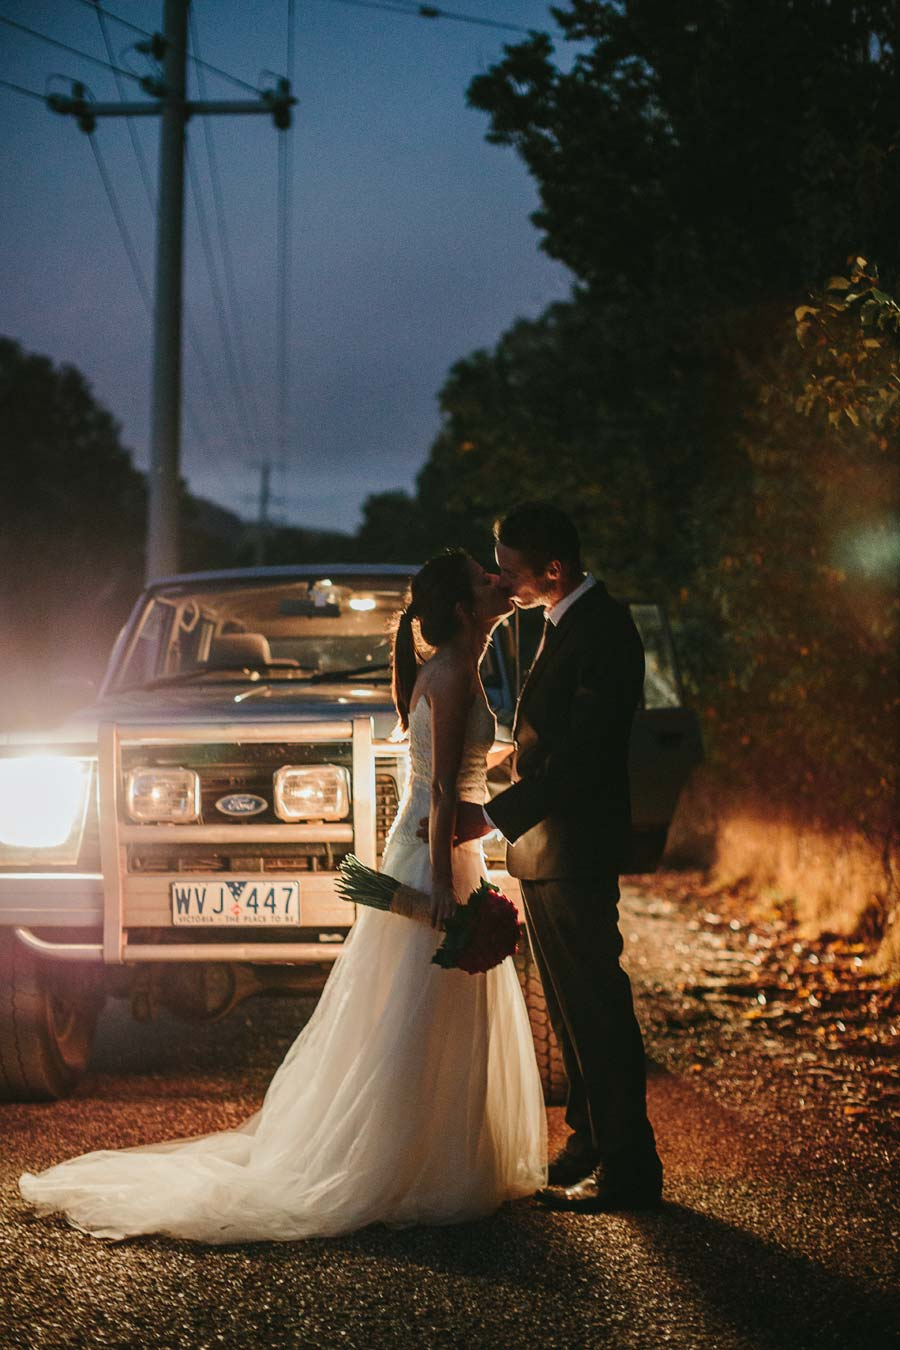 Jeep melbourne wedding photographer kiss